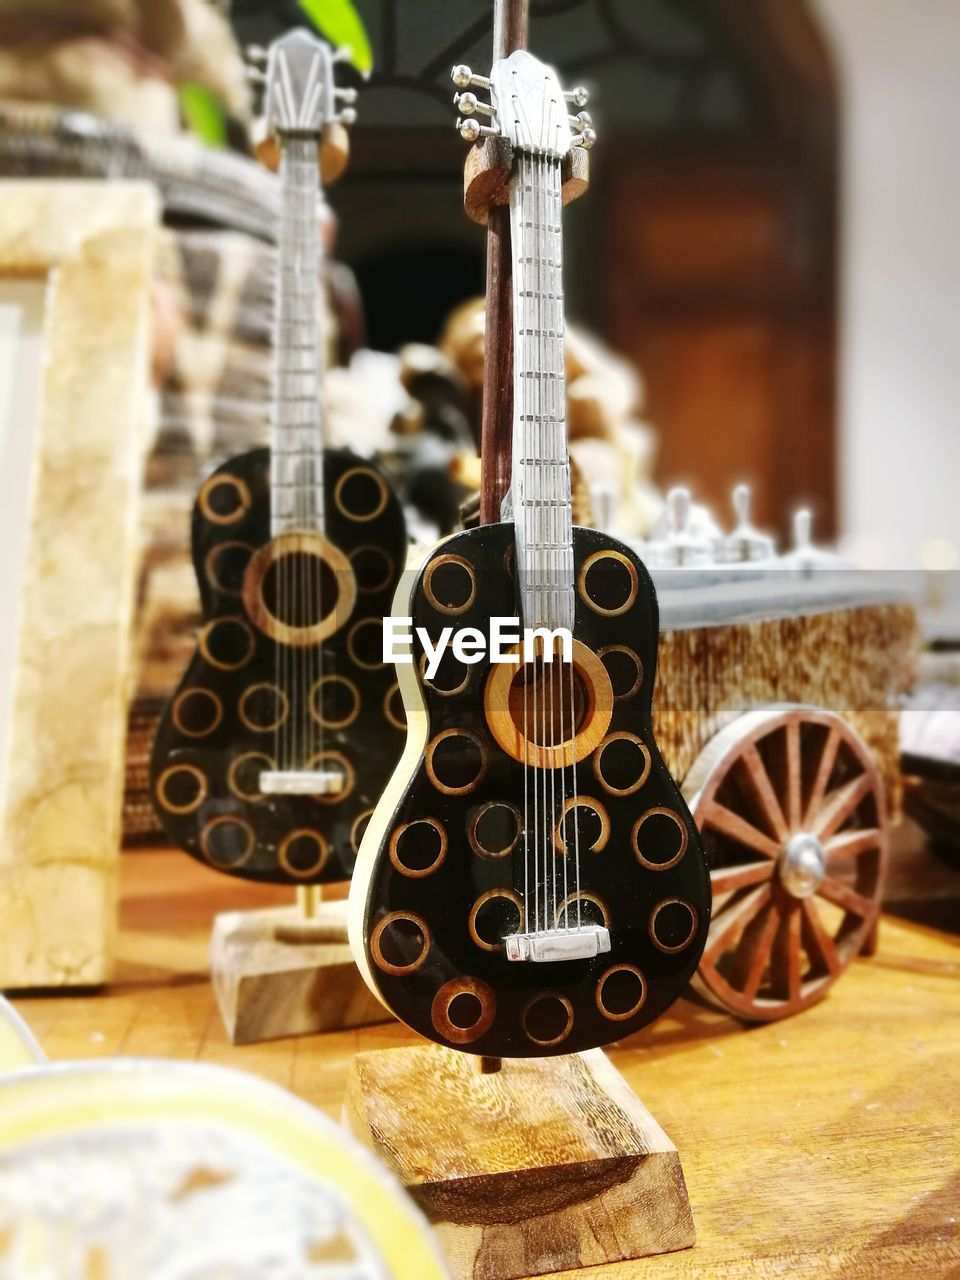 indoors, wood - material, no people, table, close-up, musical instrument, day